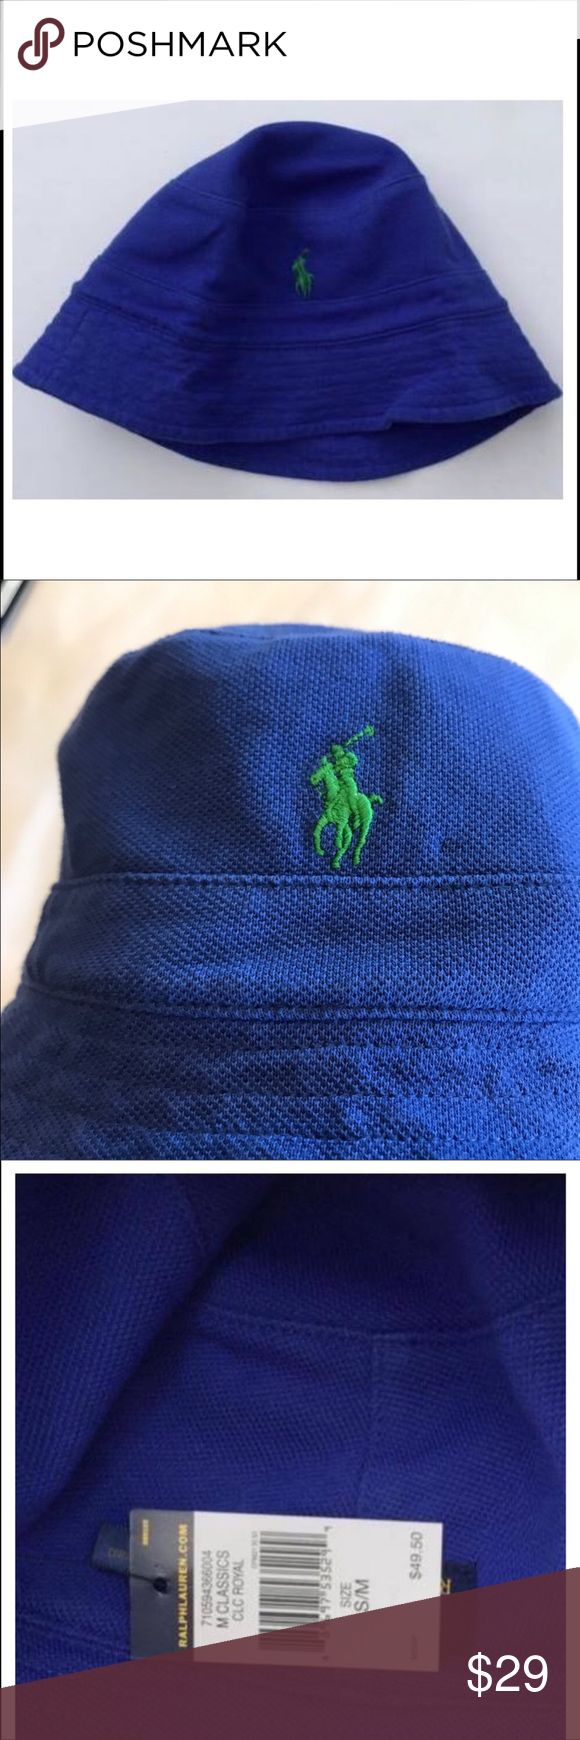 Ralph Lauren Polo bucket hat S/M royal Blue B87 Ralph Lauren Polo bucket hat S/M royal Blue B87 Polo by Ralph Lauren Accessories Hats